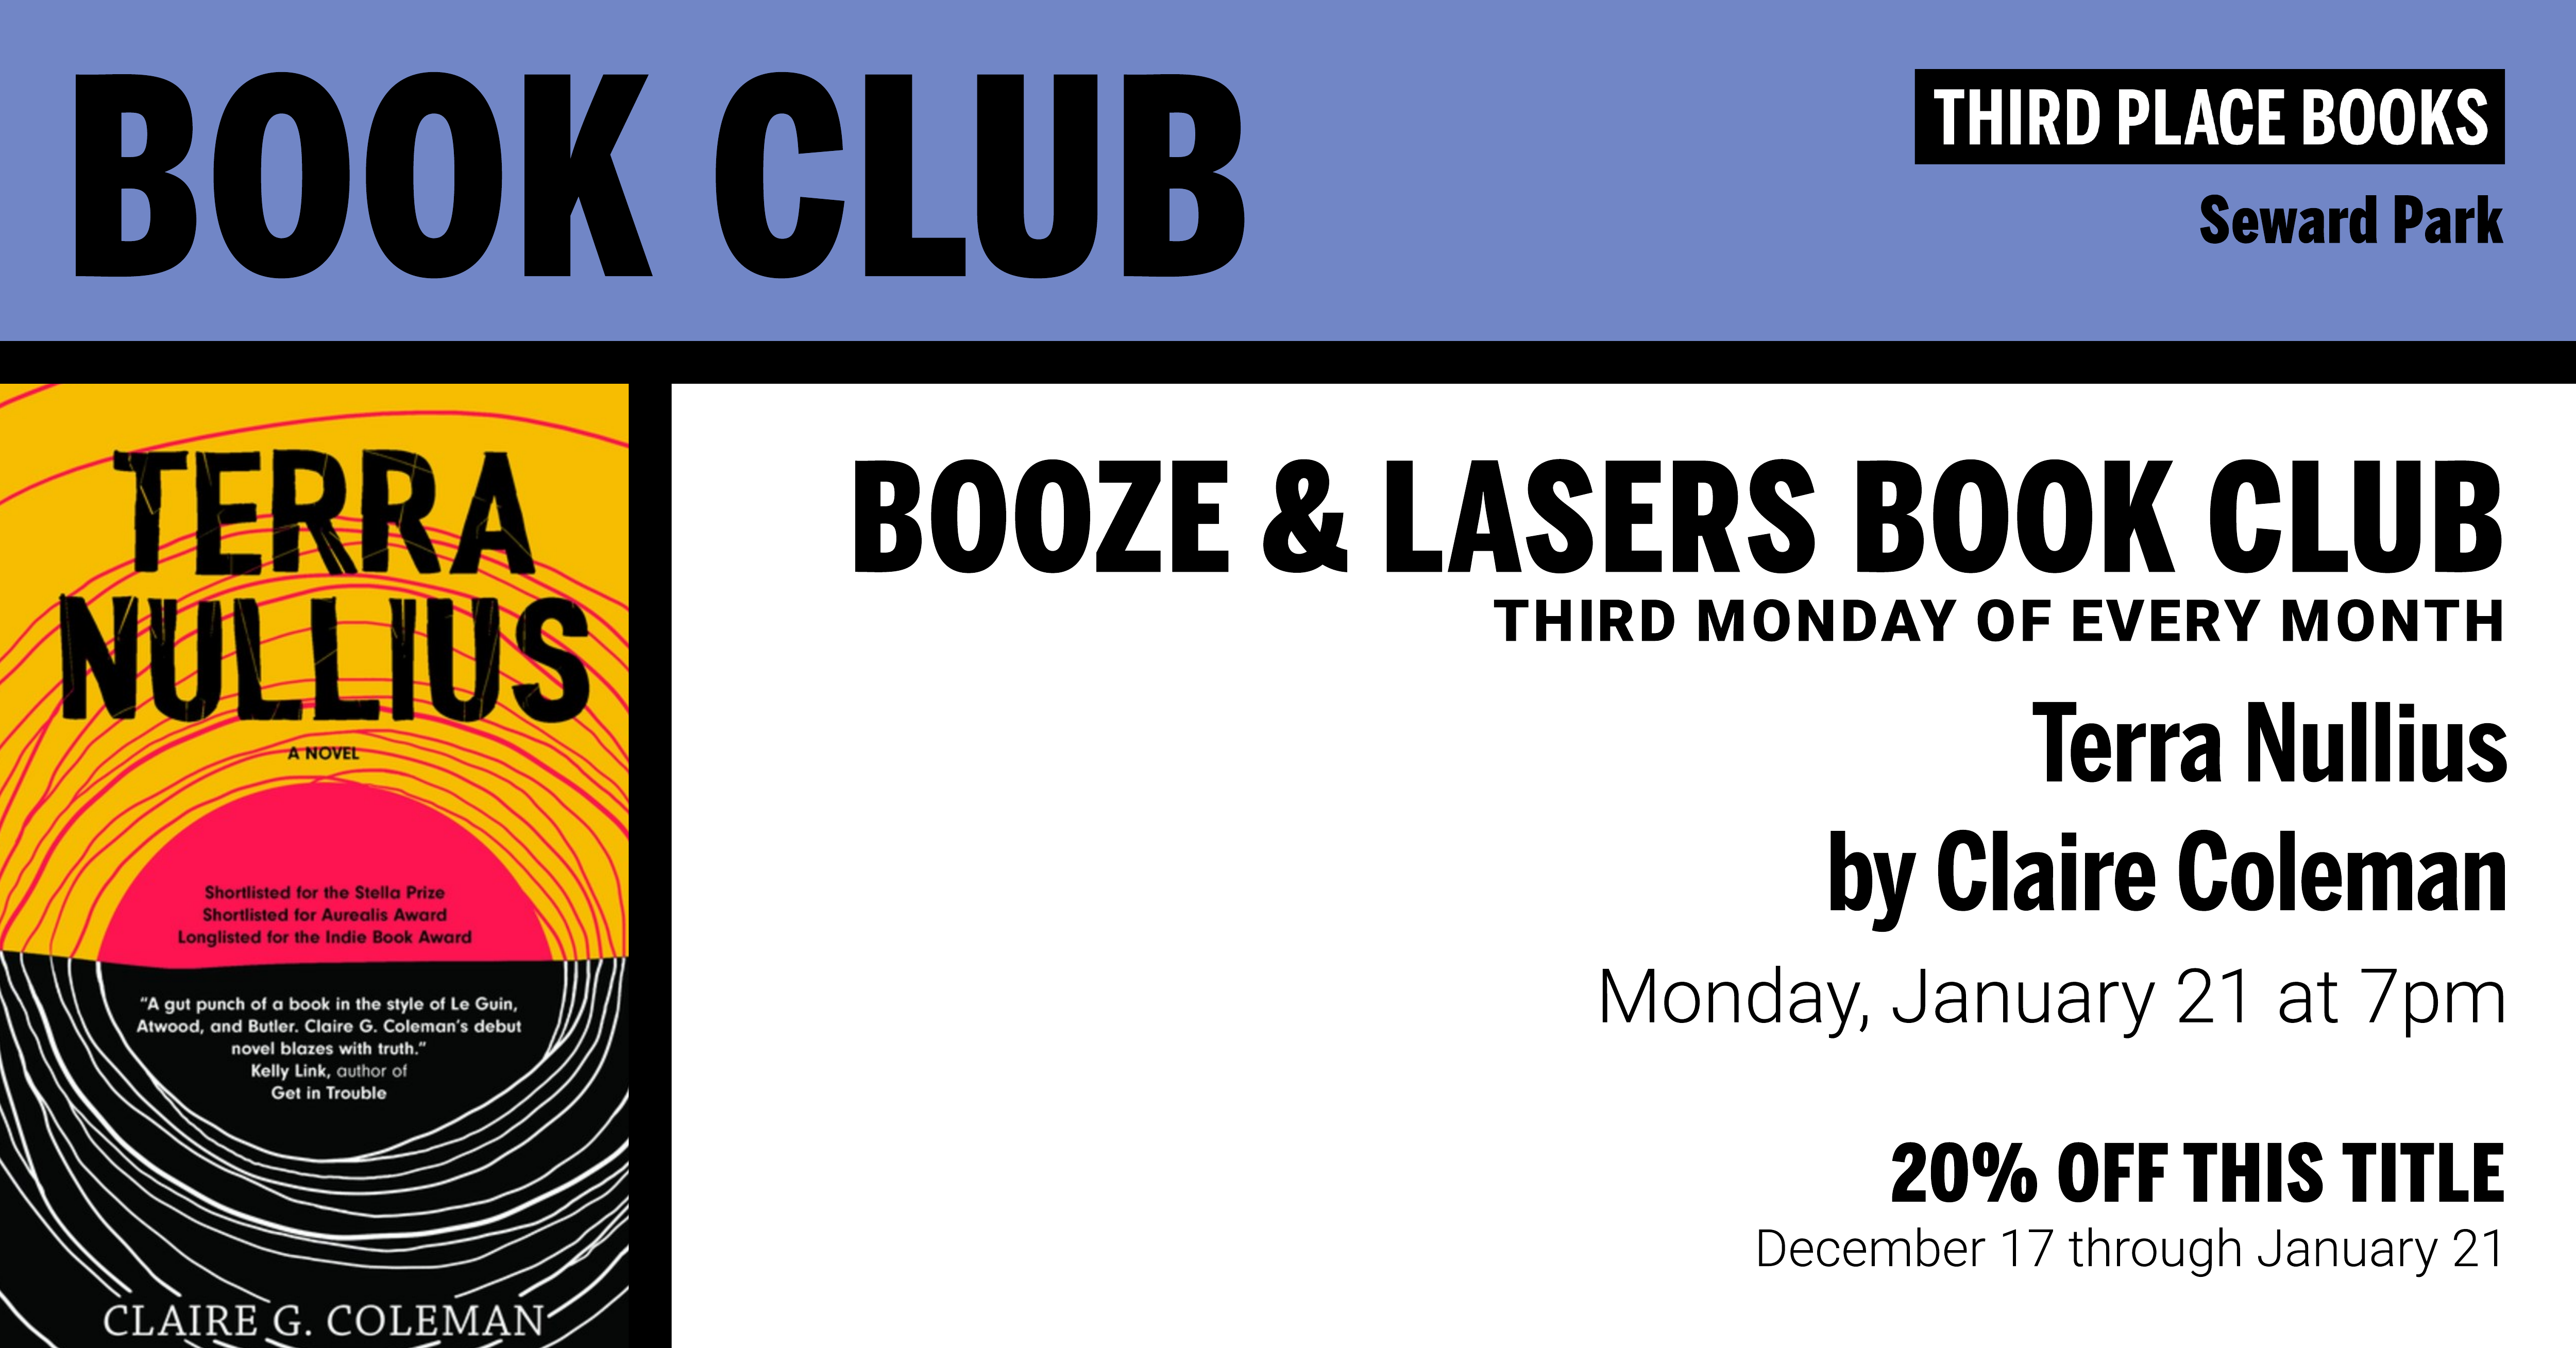 Booze & Lasers Book Club reading Terra Nullius by Claire Coleman on Monday, January 21 at 7pm